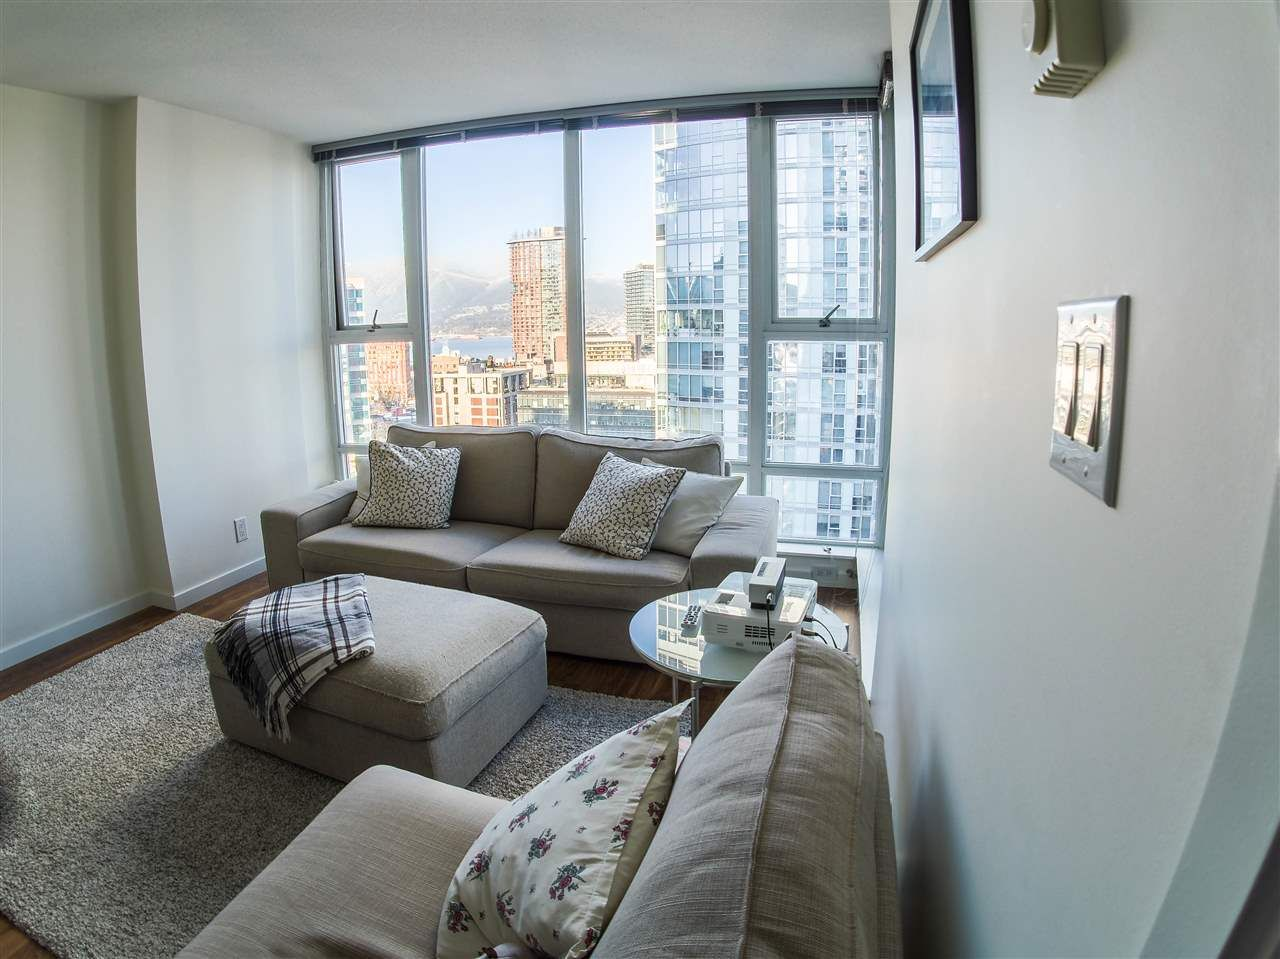 Main Photo: 1806 668 CITADEL PARADE in Vancouver: Downtown VW Condo for sale (Vancouver West)  : MLS®# R2339846